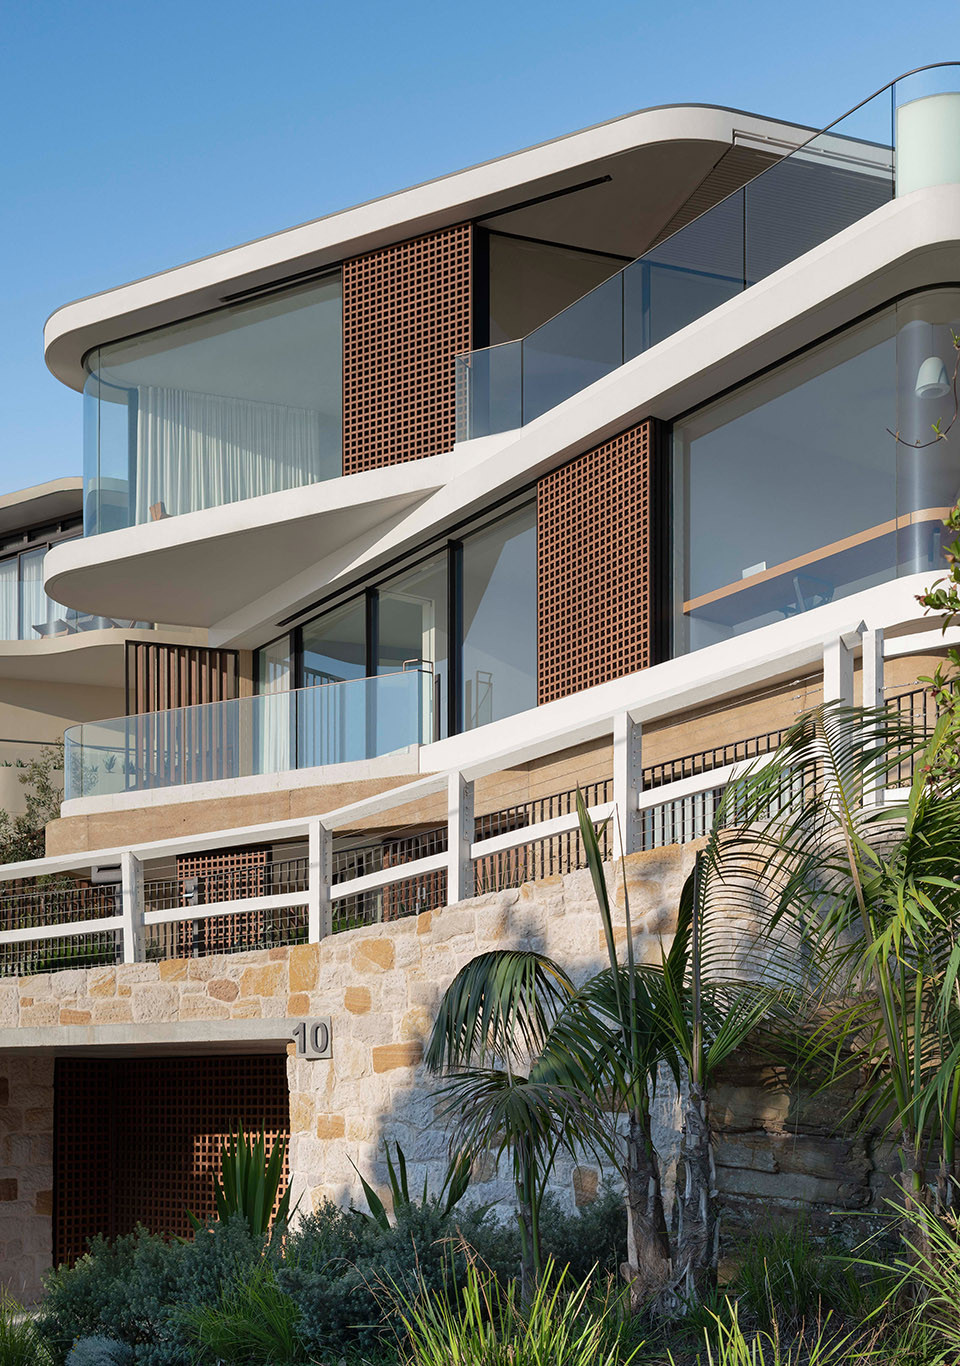 3-pacific-view-point-house-by-luigi-rosselli-architects.jpg